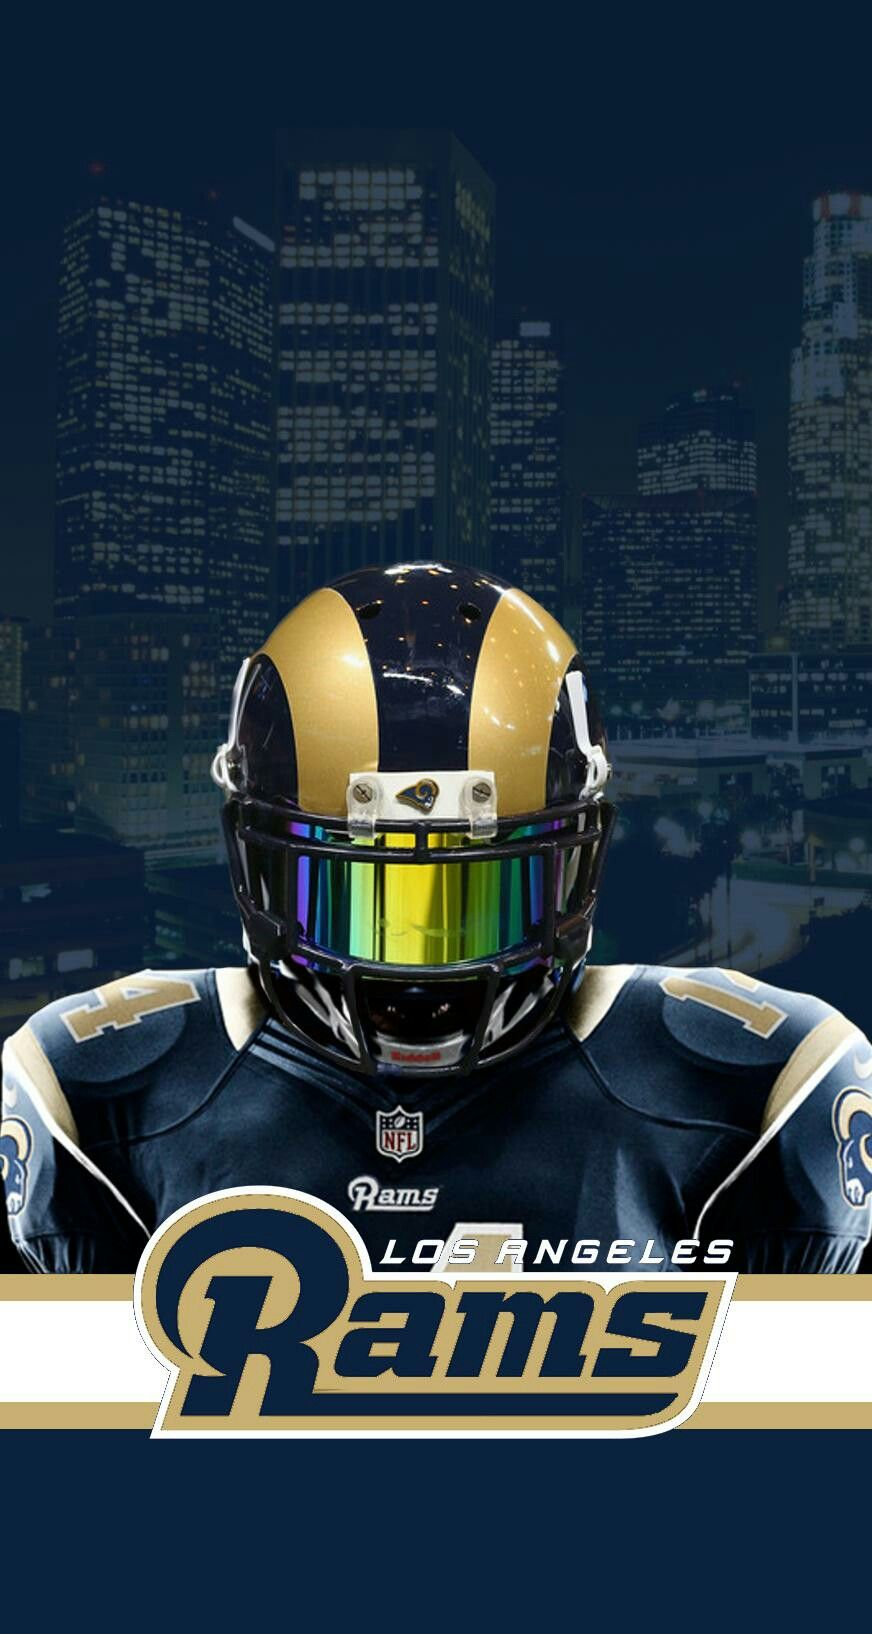 Los Angeles In The House Https Www Amazon Com Best Sellers Zgbs Tag Endzoneblog 20 Camp 222345 Creative 494157 Linkc Los Angeles Rams Rams Football La Rams